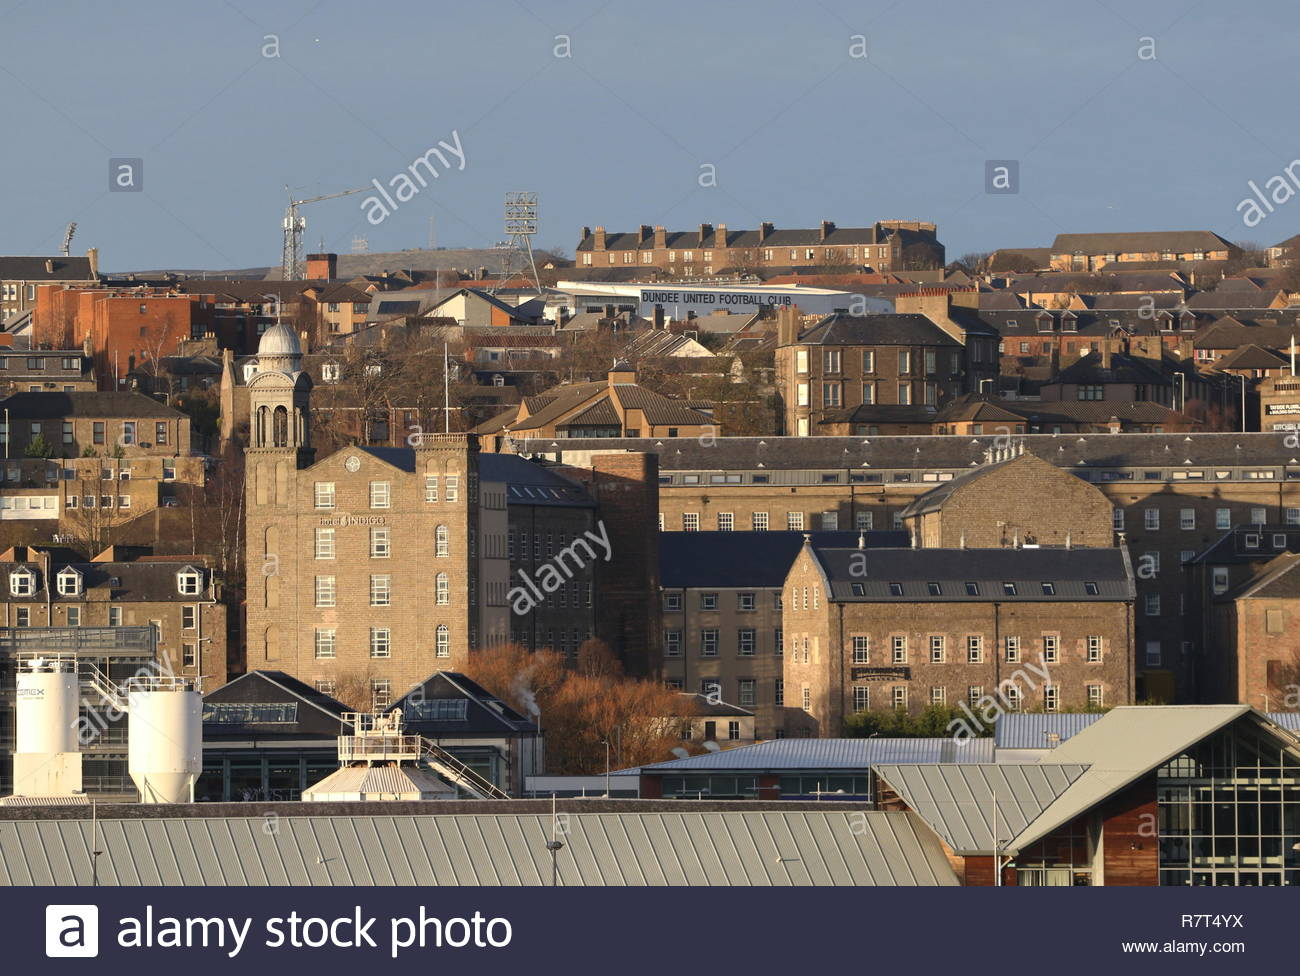 Distant view of Hotel Indigo Dundee Scotland  December 2018 Stock Photo